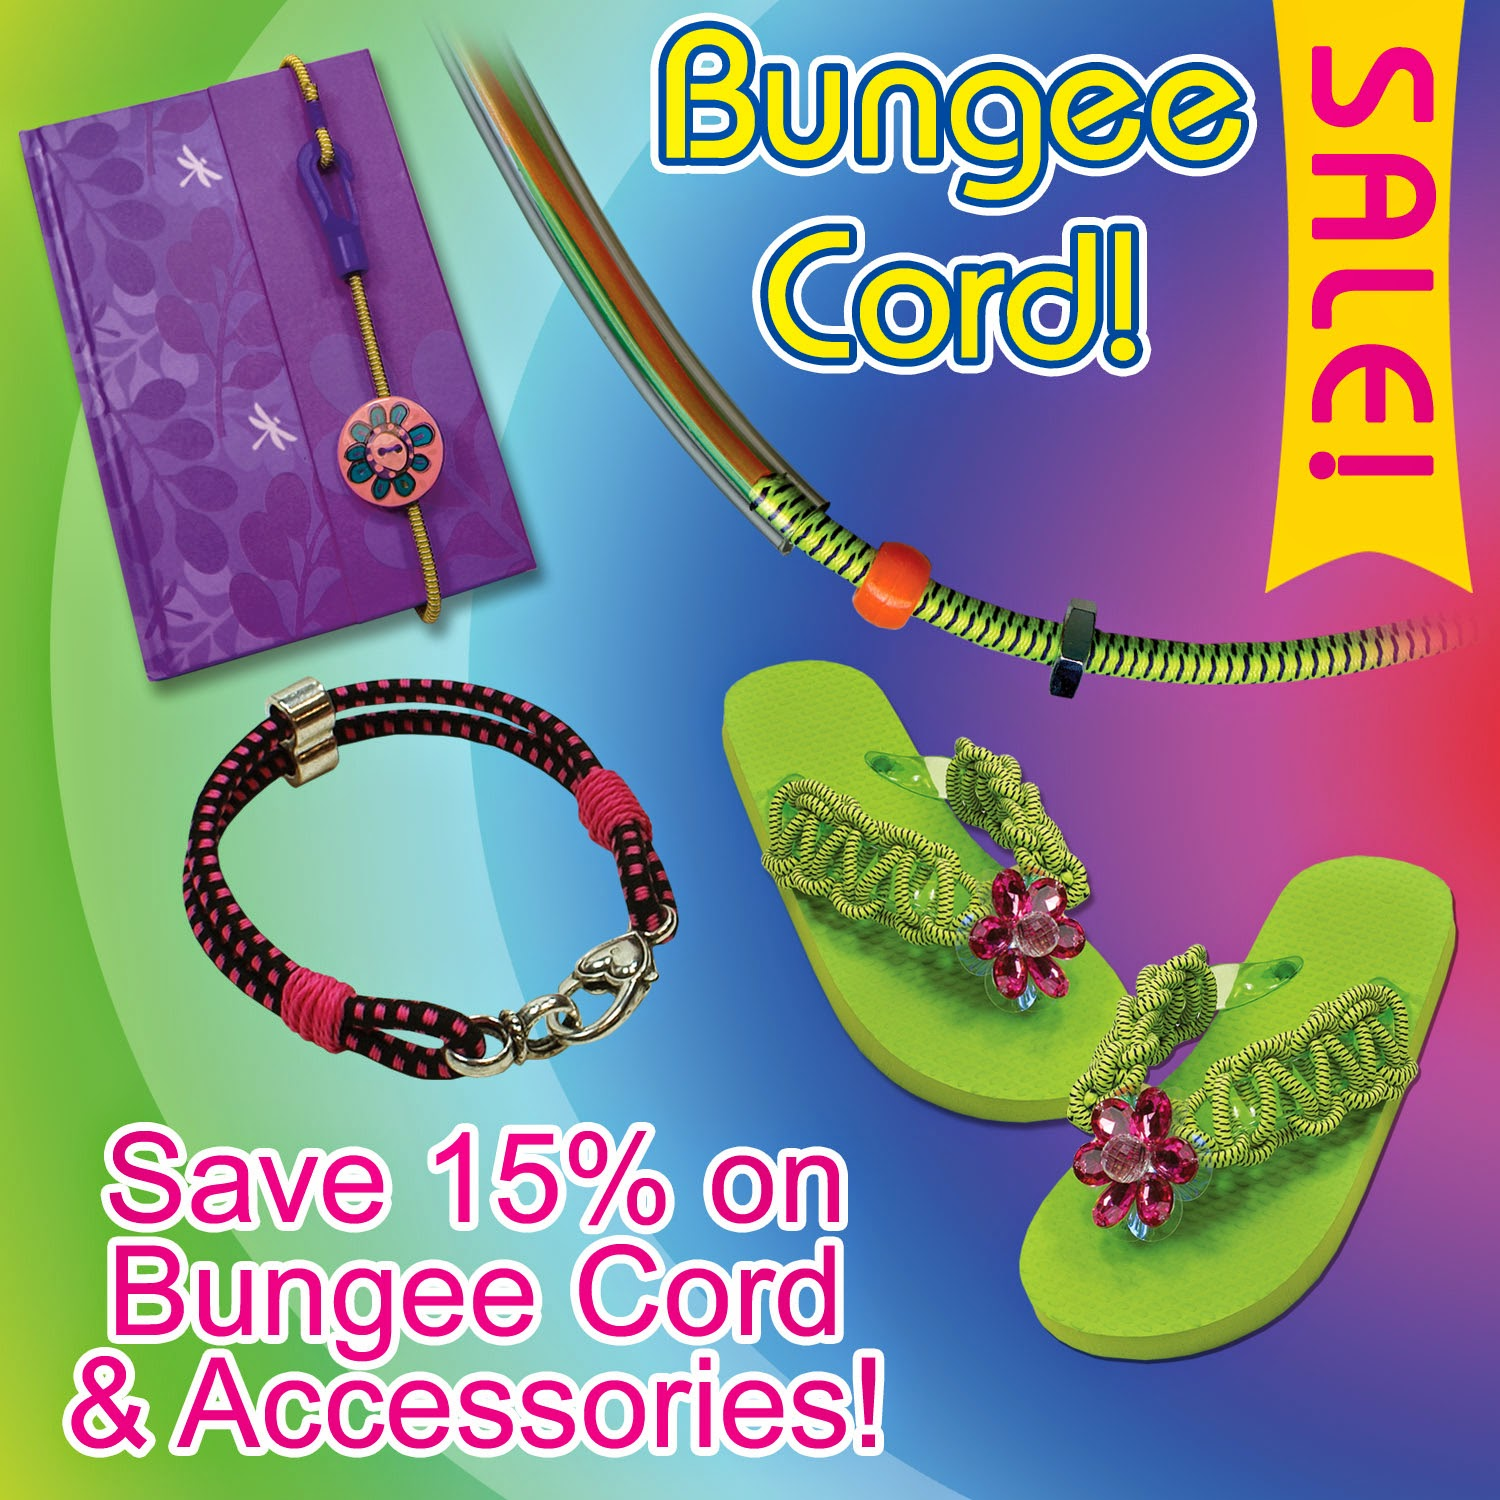 Bungee Cord and Accessory Sale - Expires Sunday, Aug. 31st, 2014